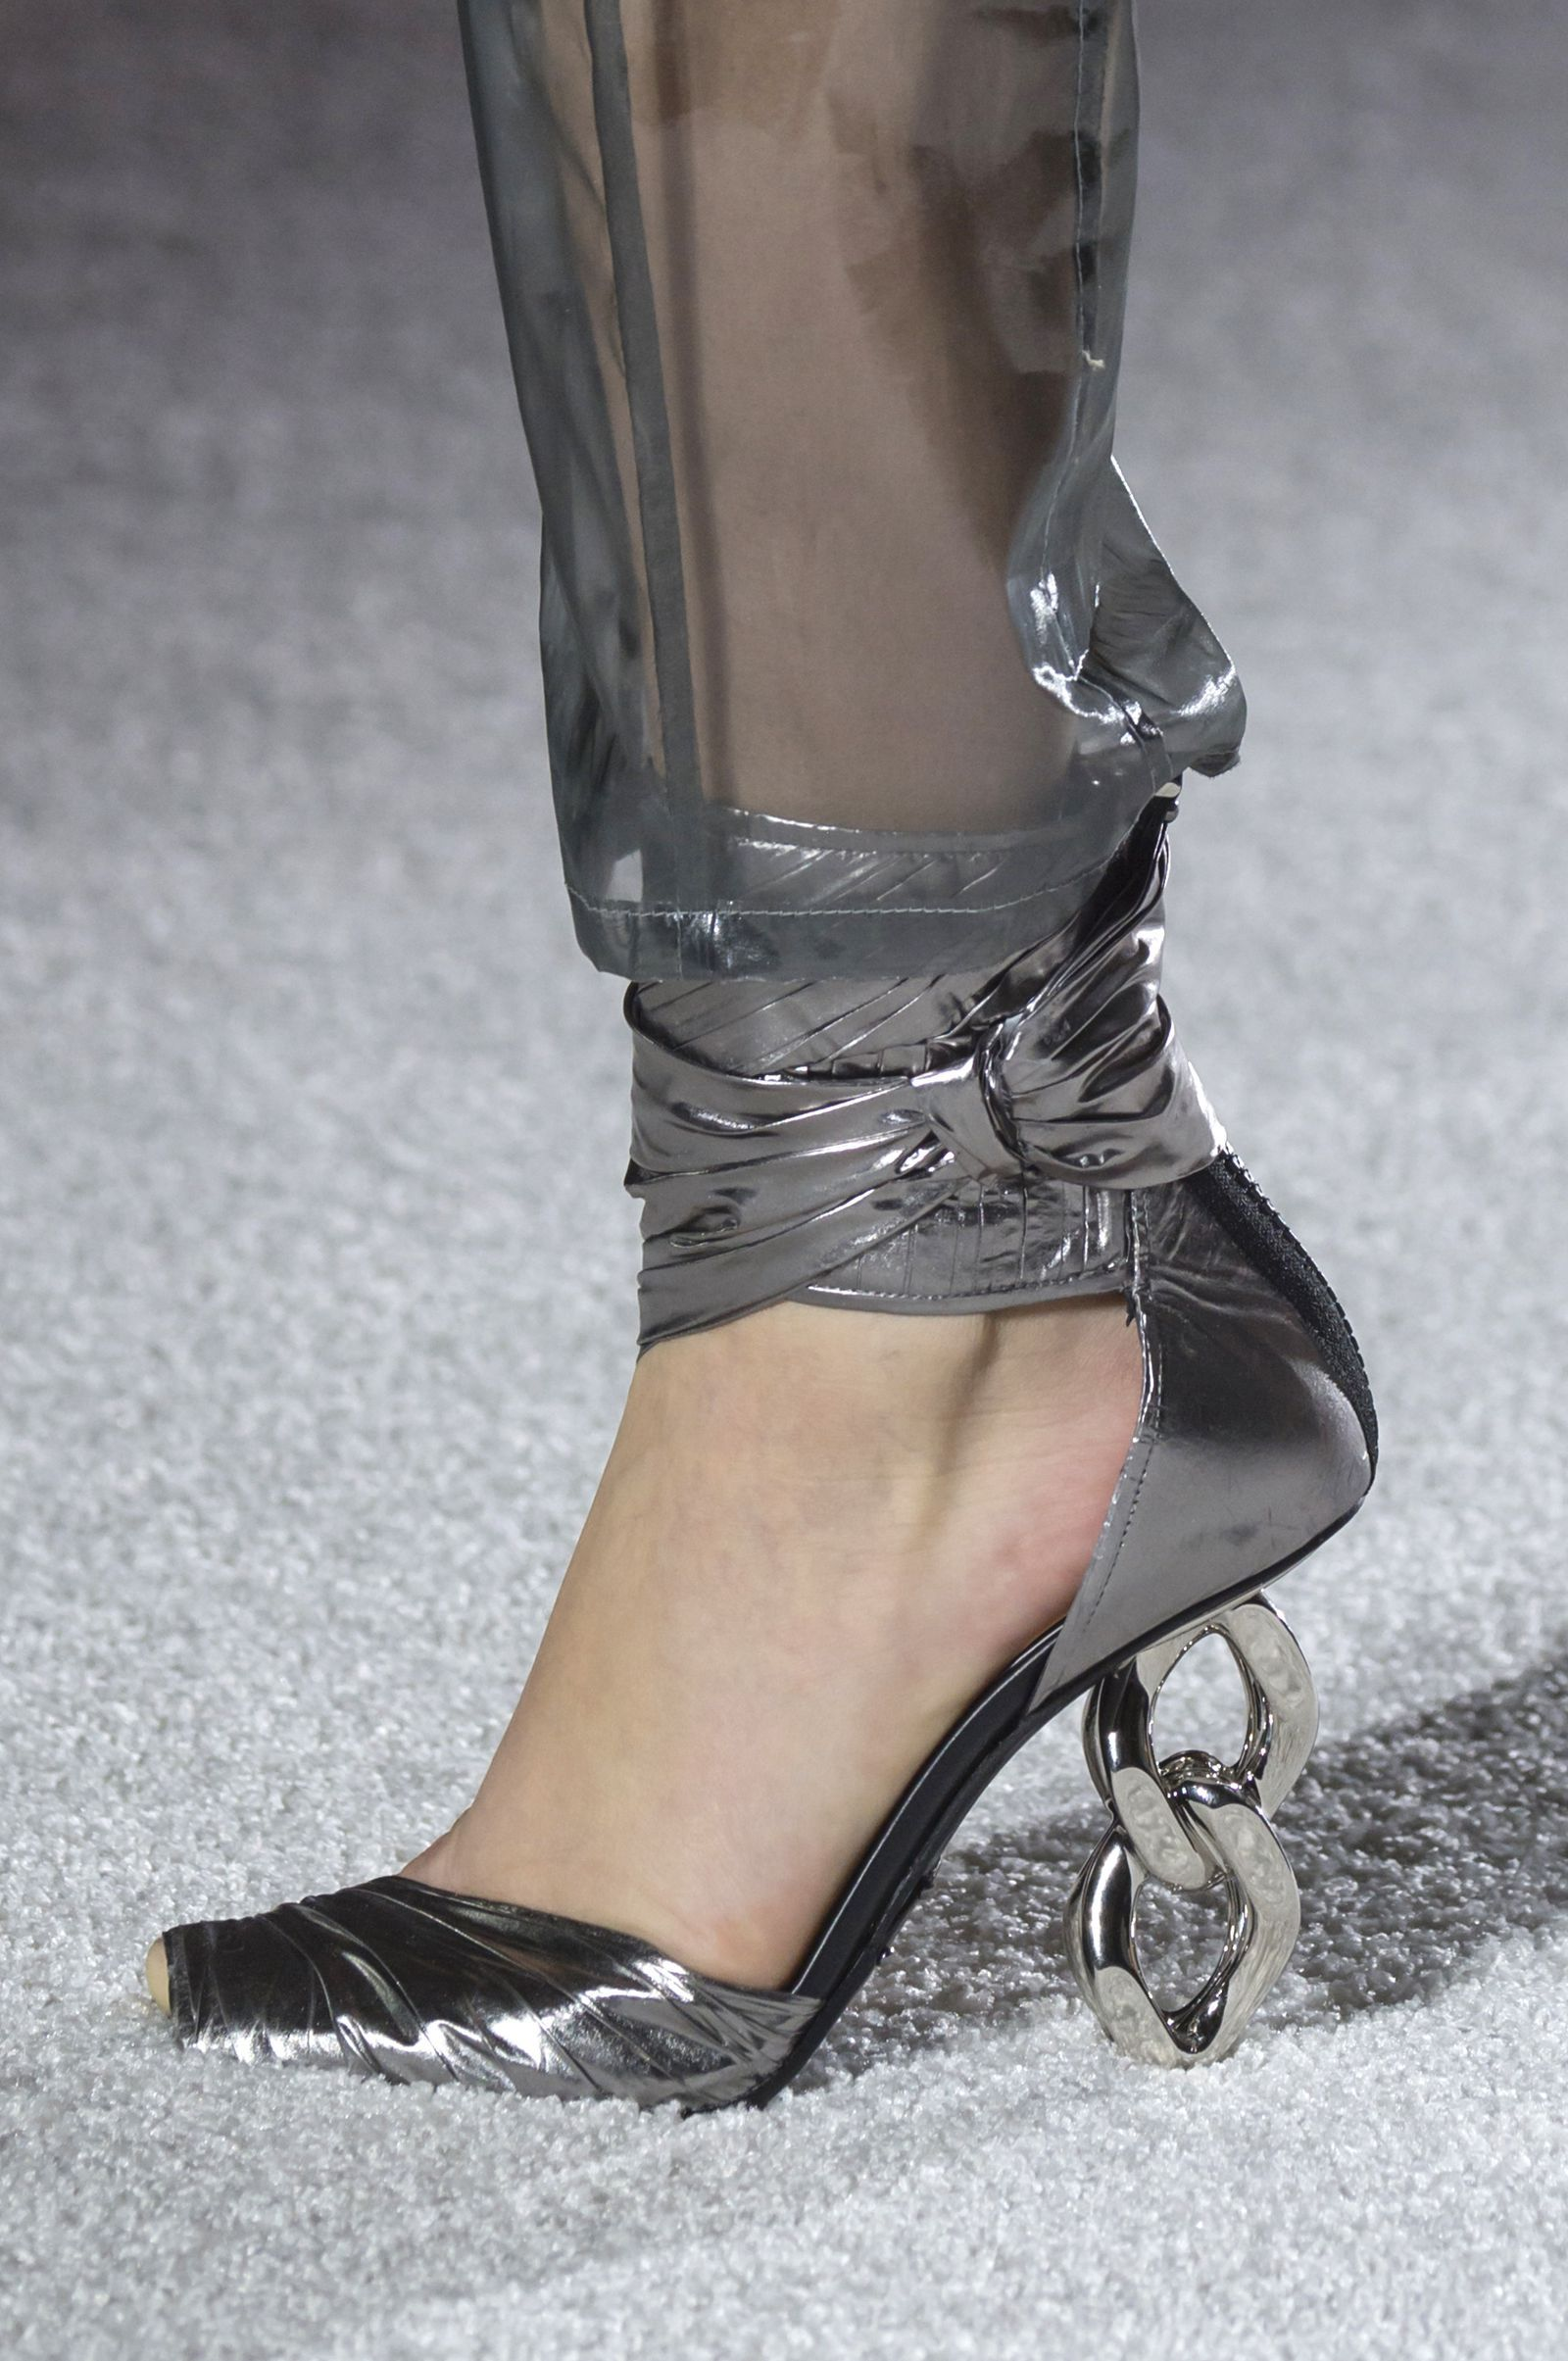 33d66946dbf Shop our favourite shoes and boots from the AW18 catwalks | F/W 2018 ...